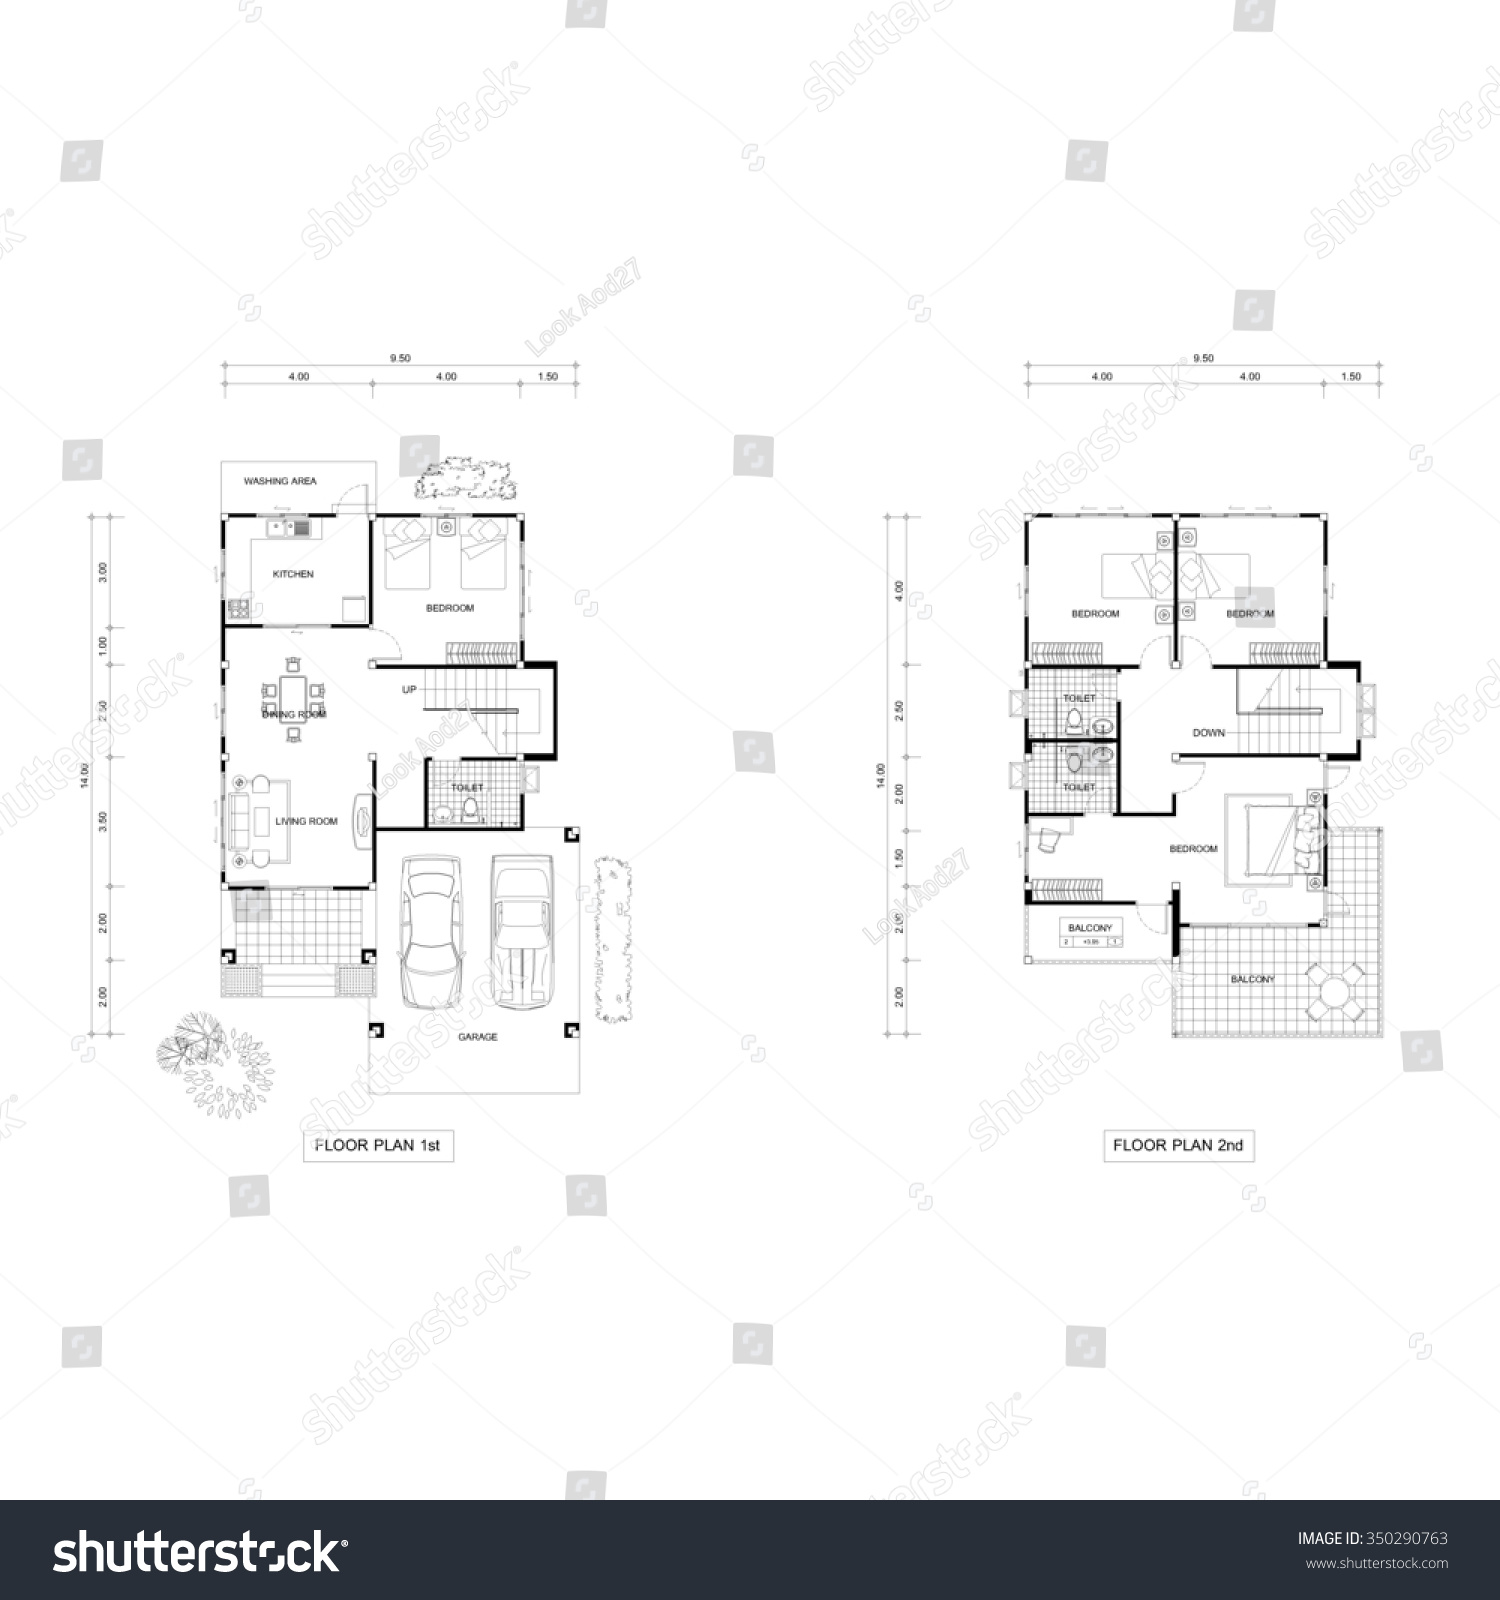 Architecture plan drawing design house plans stock for Upstairs floor plans